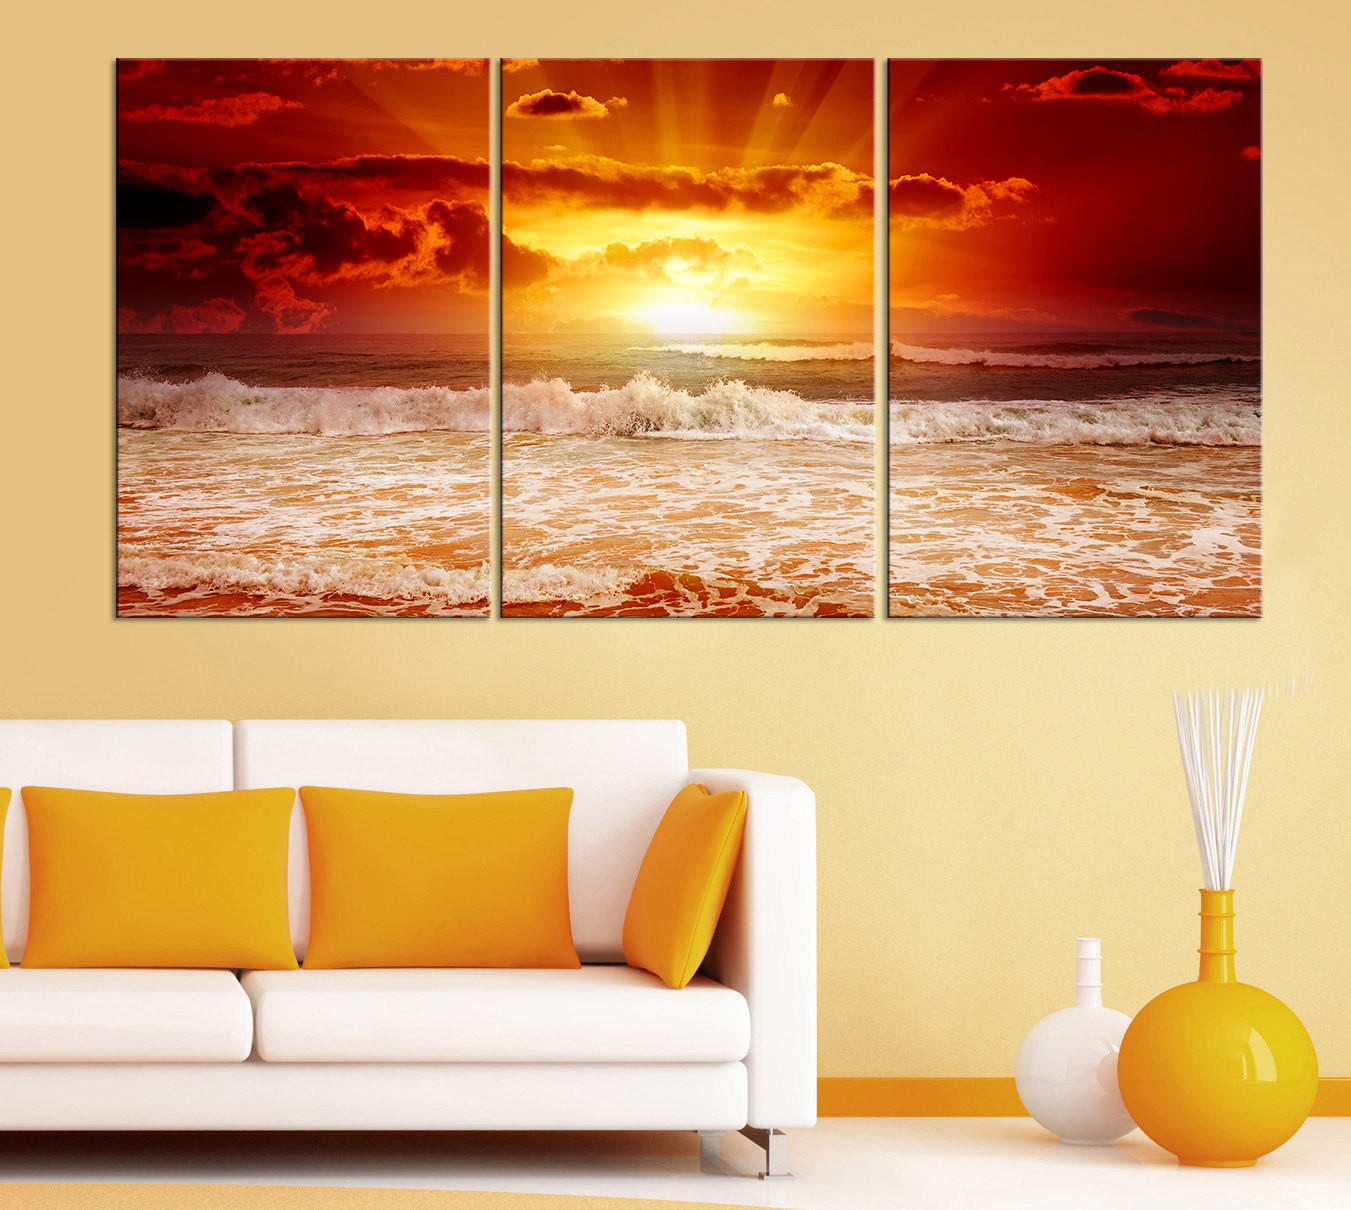 3 Piece Red Sunset on the Sea Canvas ART from MyCanvasPrint